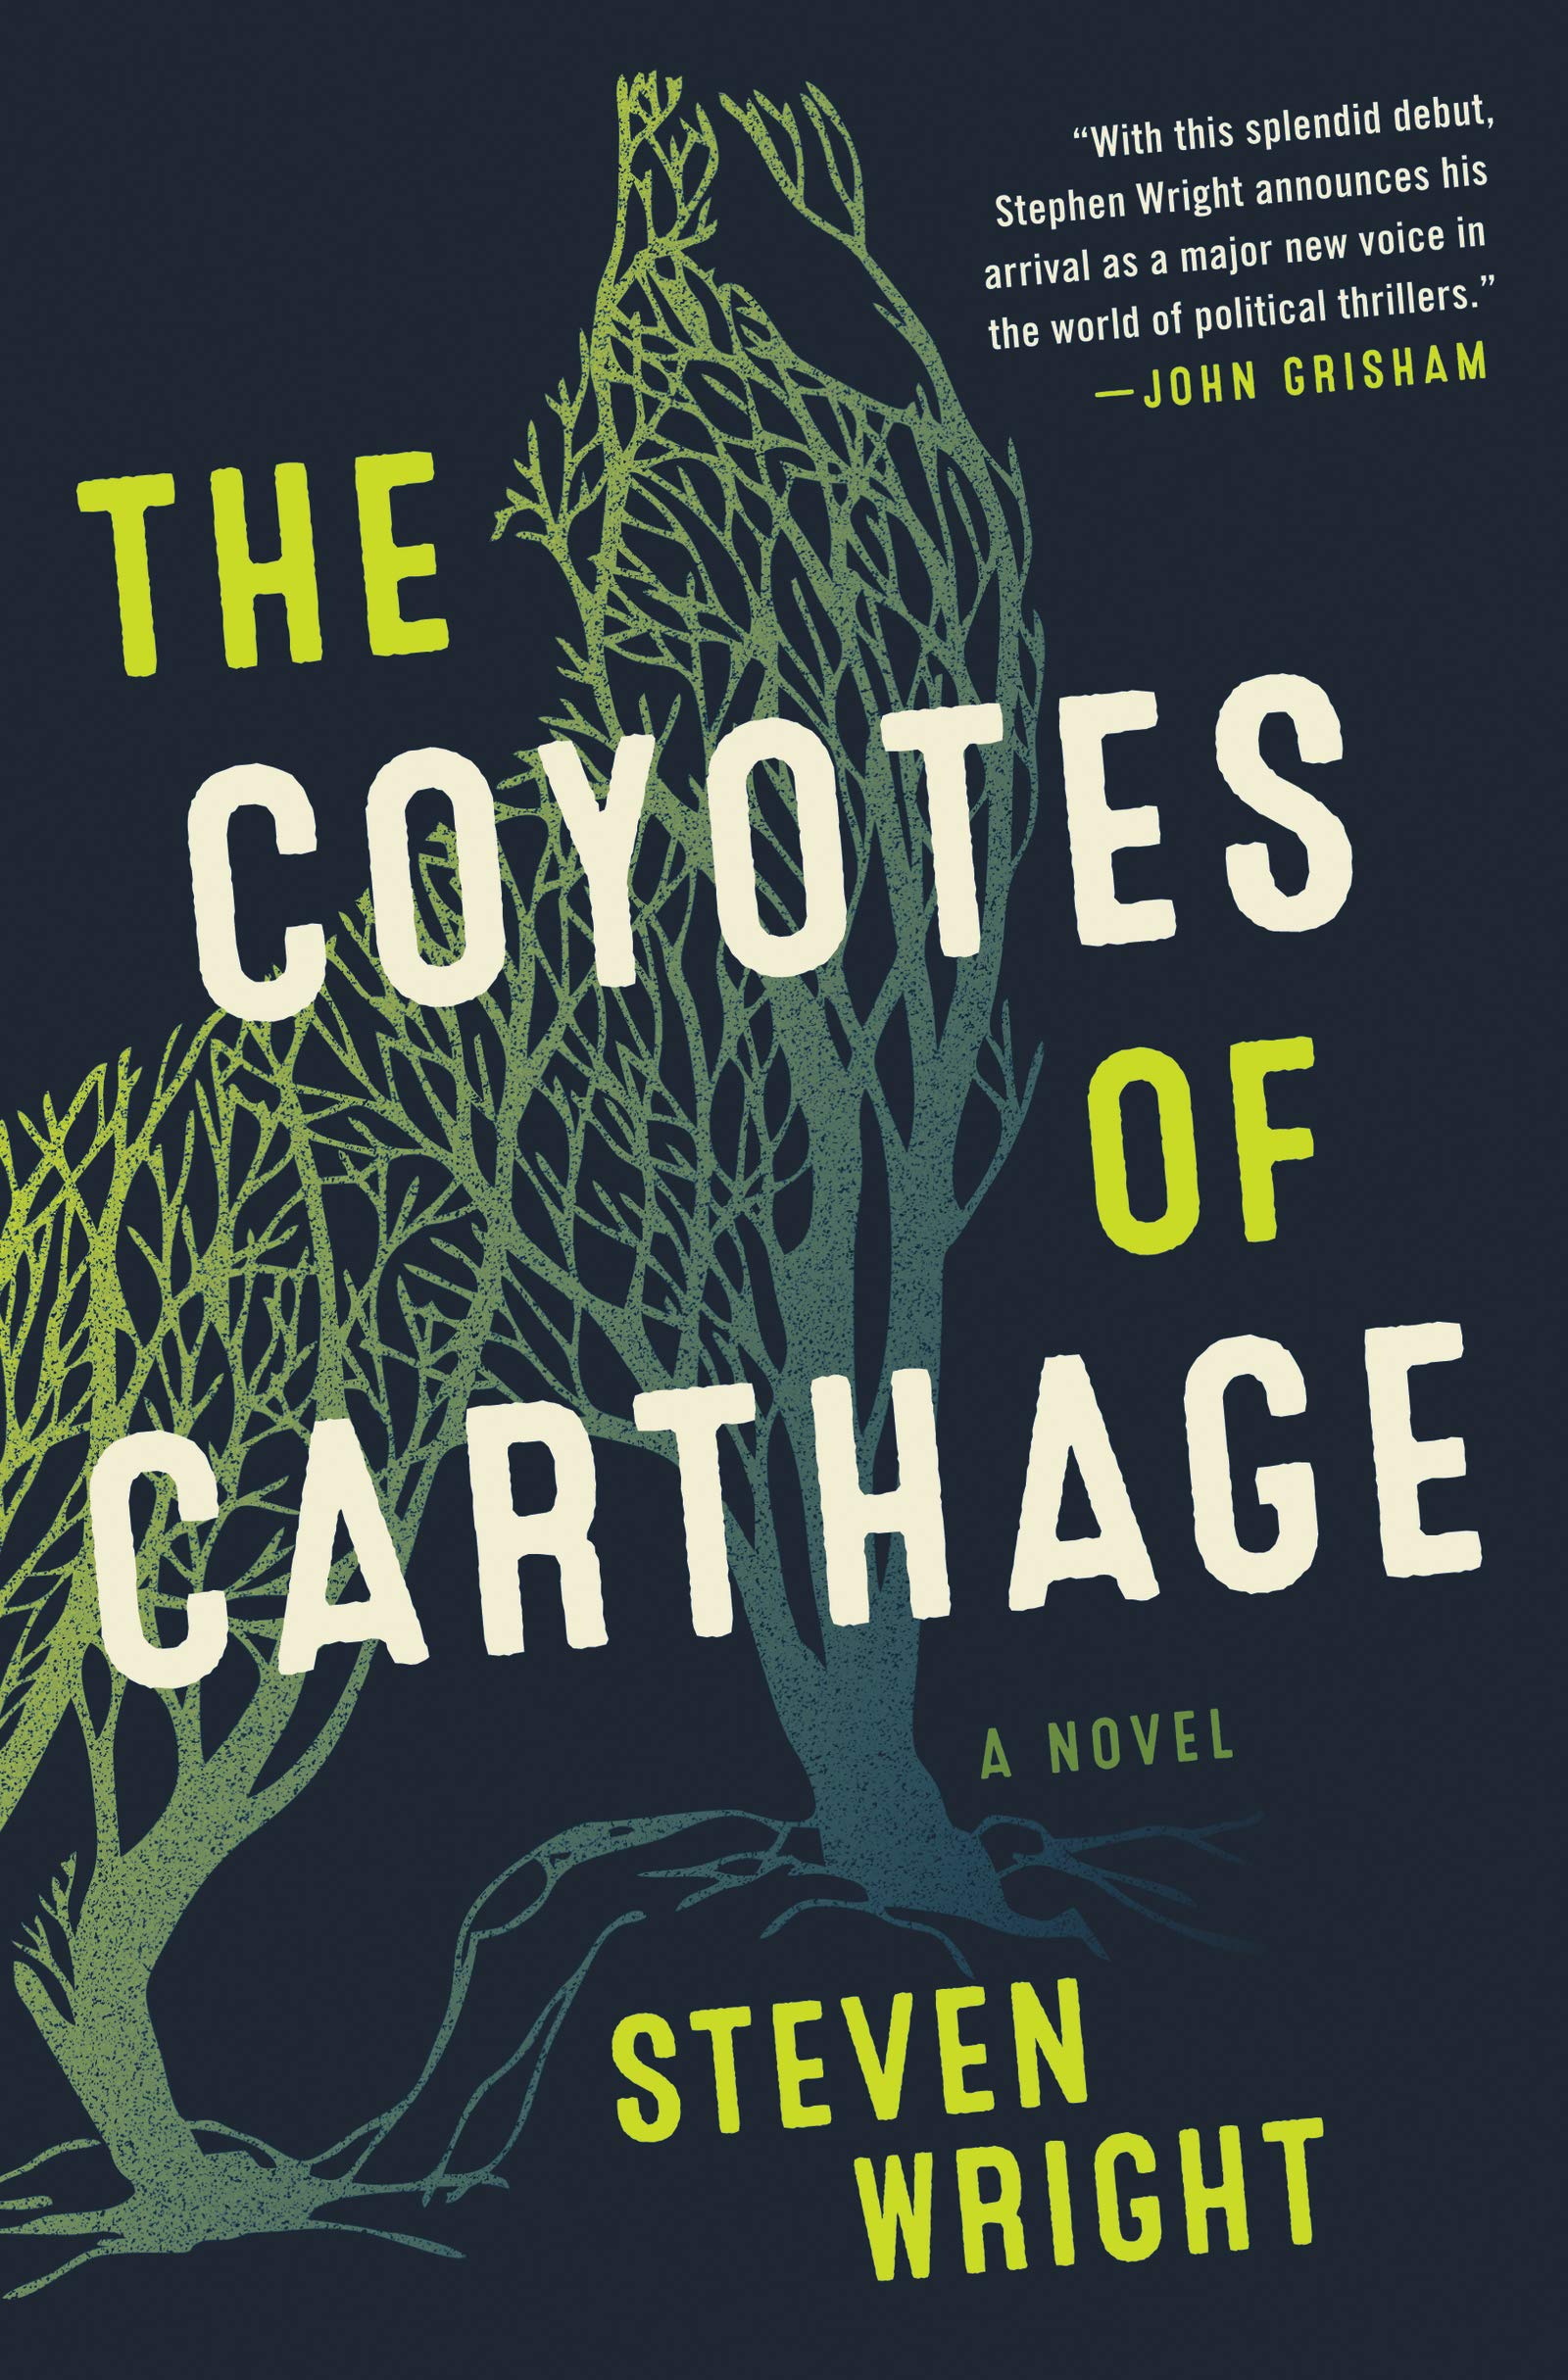 Image result for coyotes of carthage book